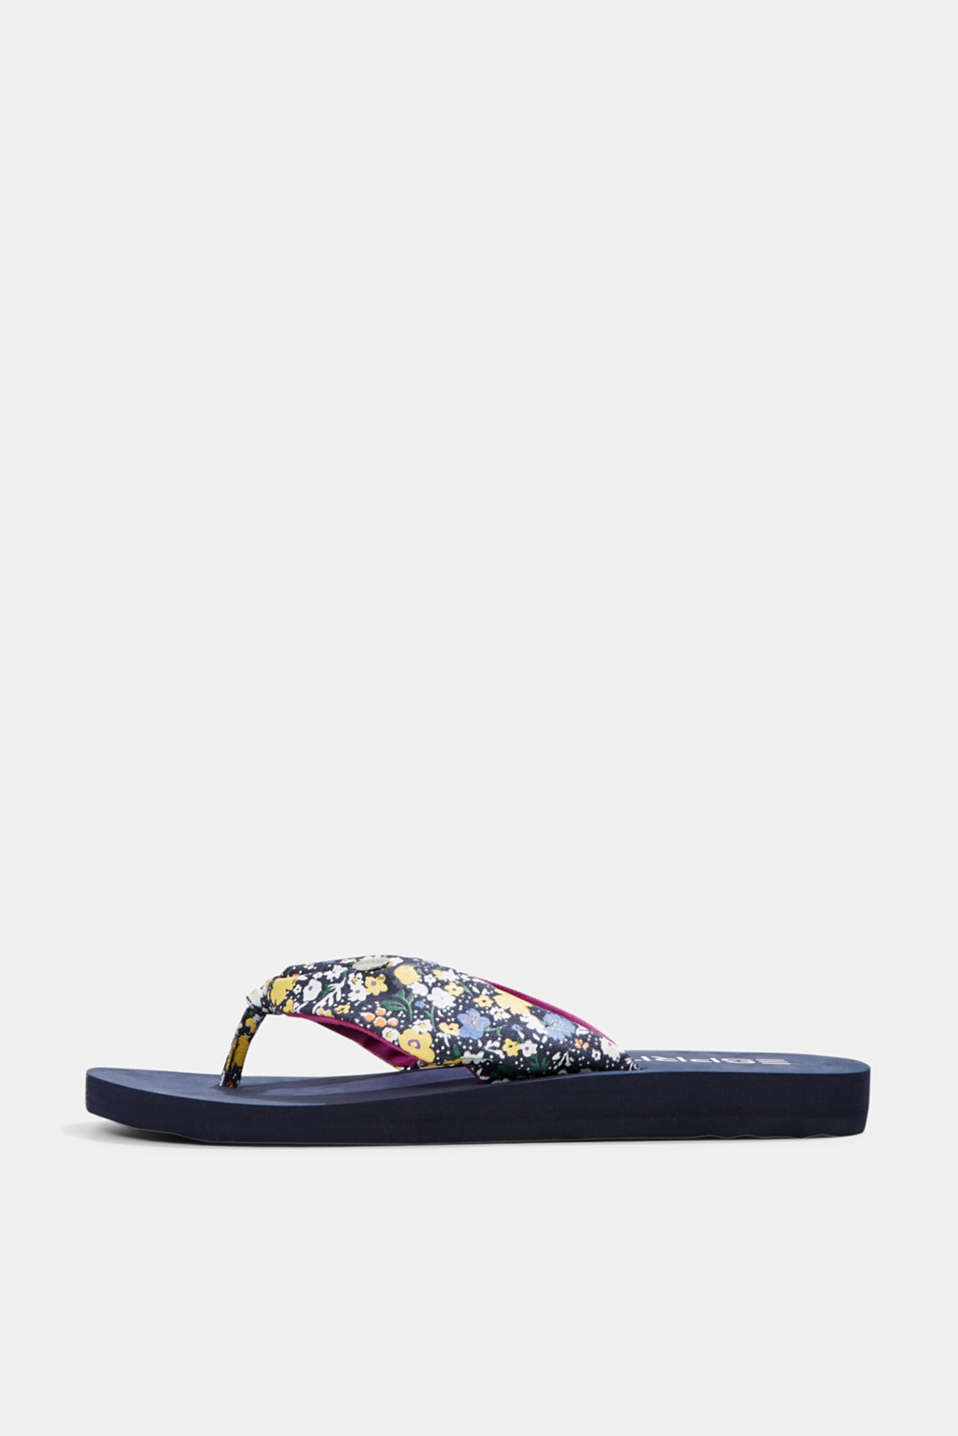 Esprit - Thong sandals with a printed strap